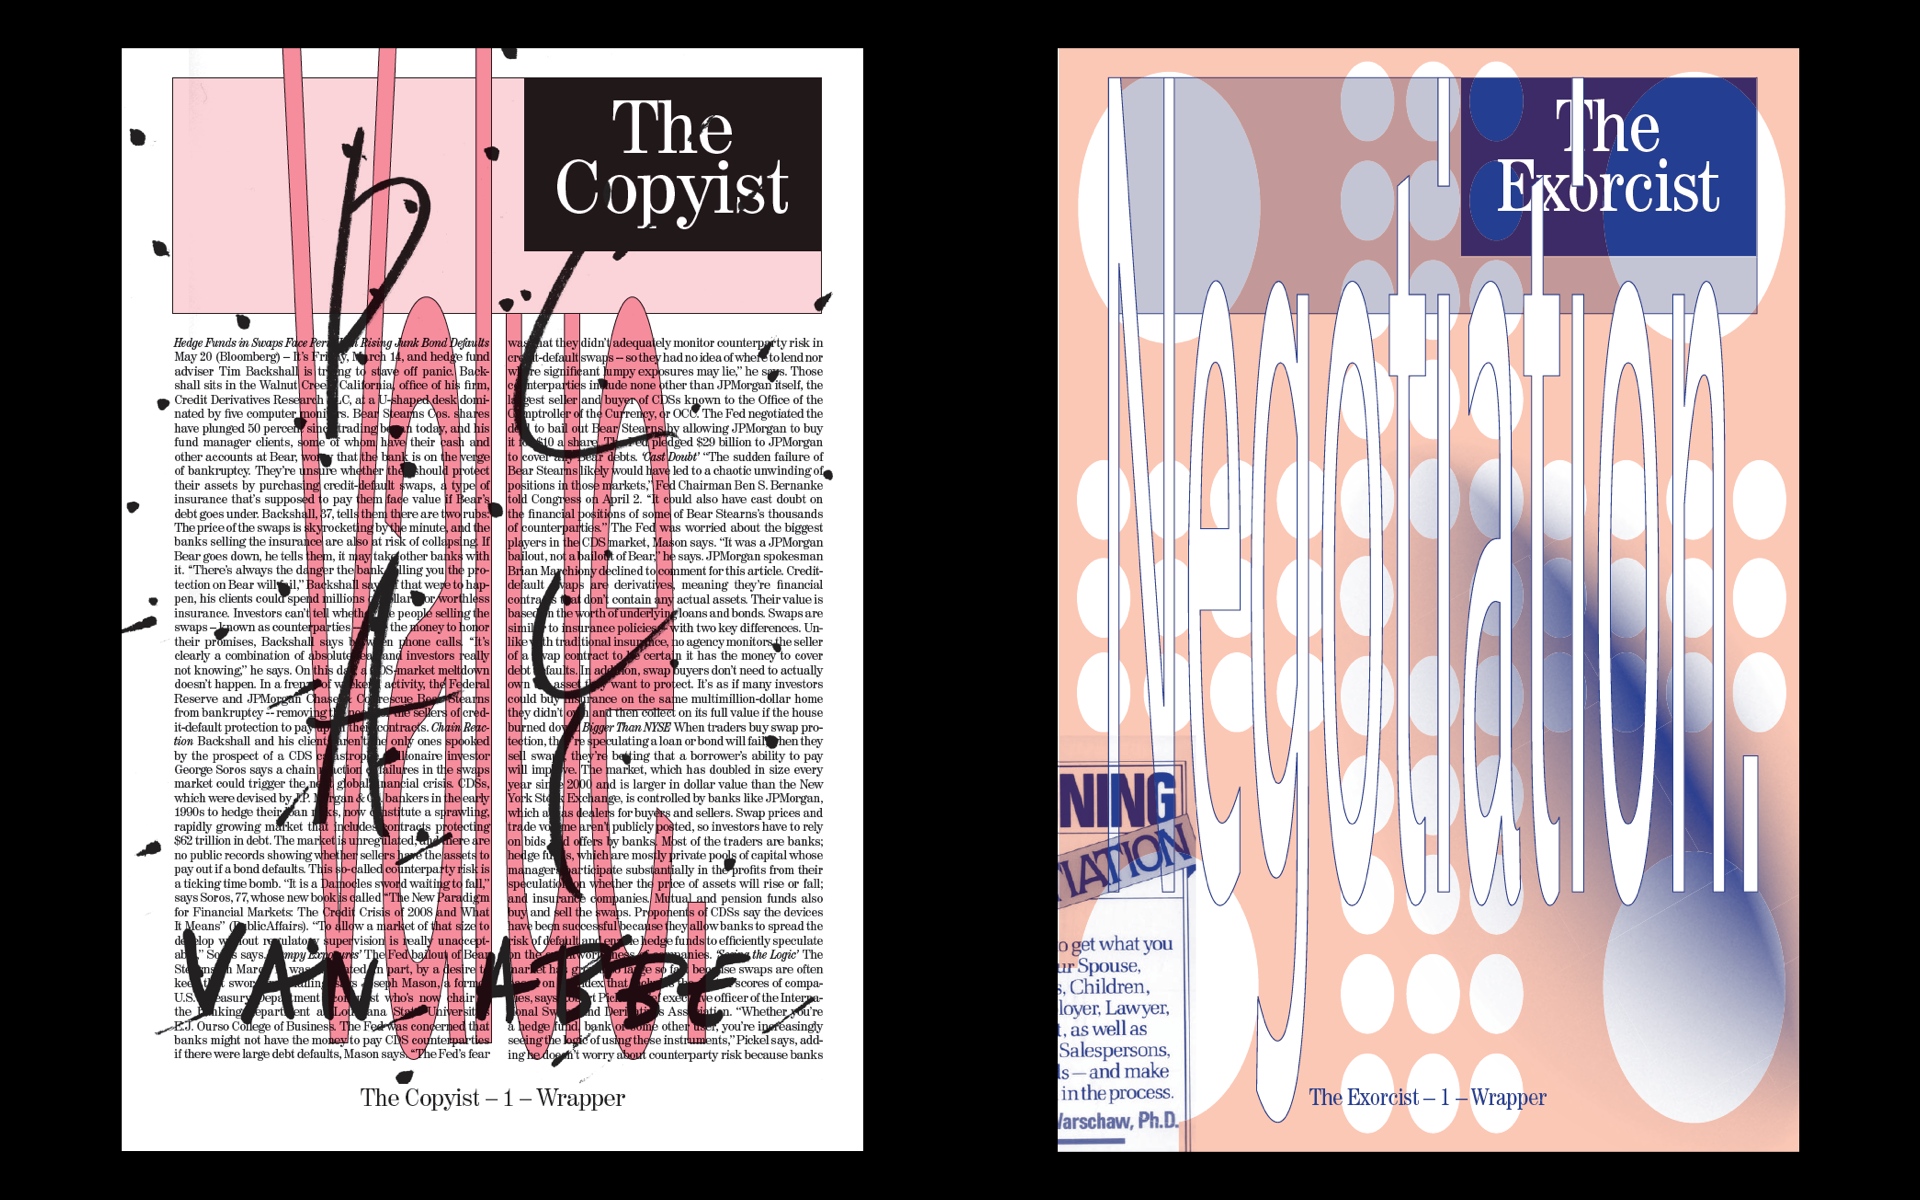 The Copyist #1 (2010) & The Exorcist #2 (2011), Metahaven